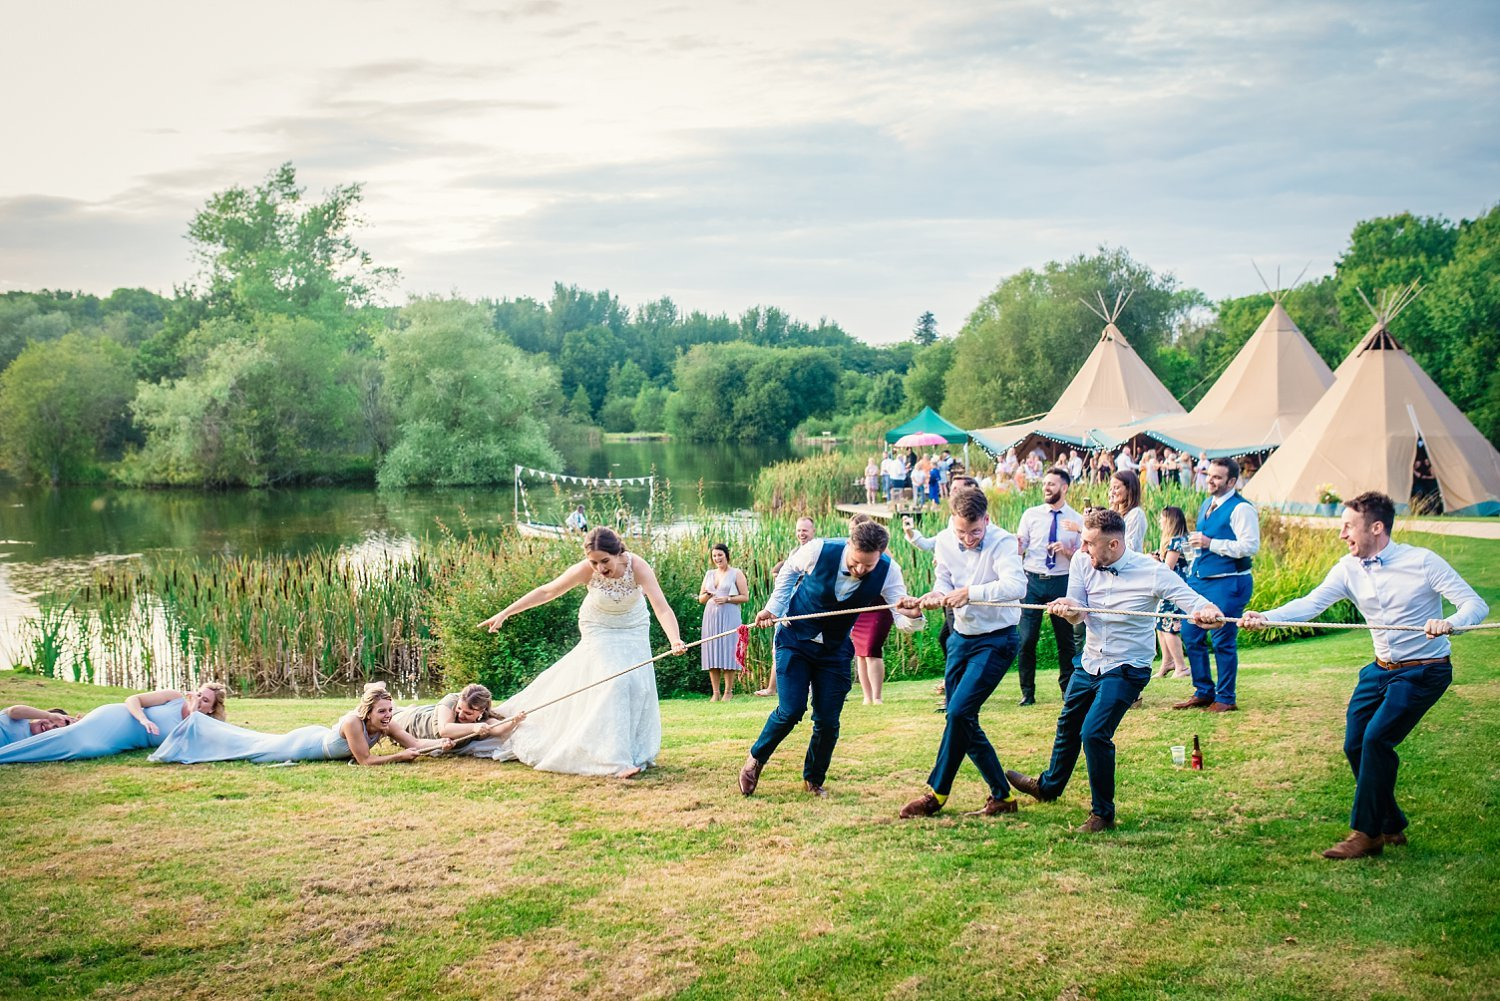 Duncton Mill Fishery Wedding - tug of war